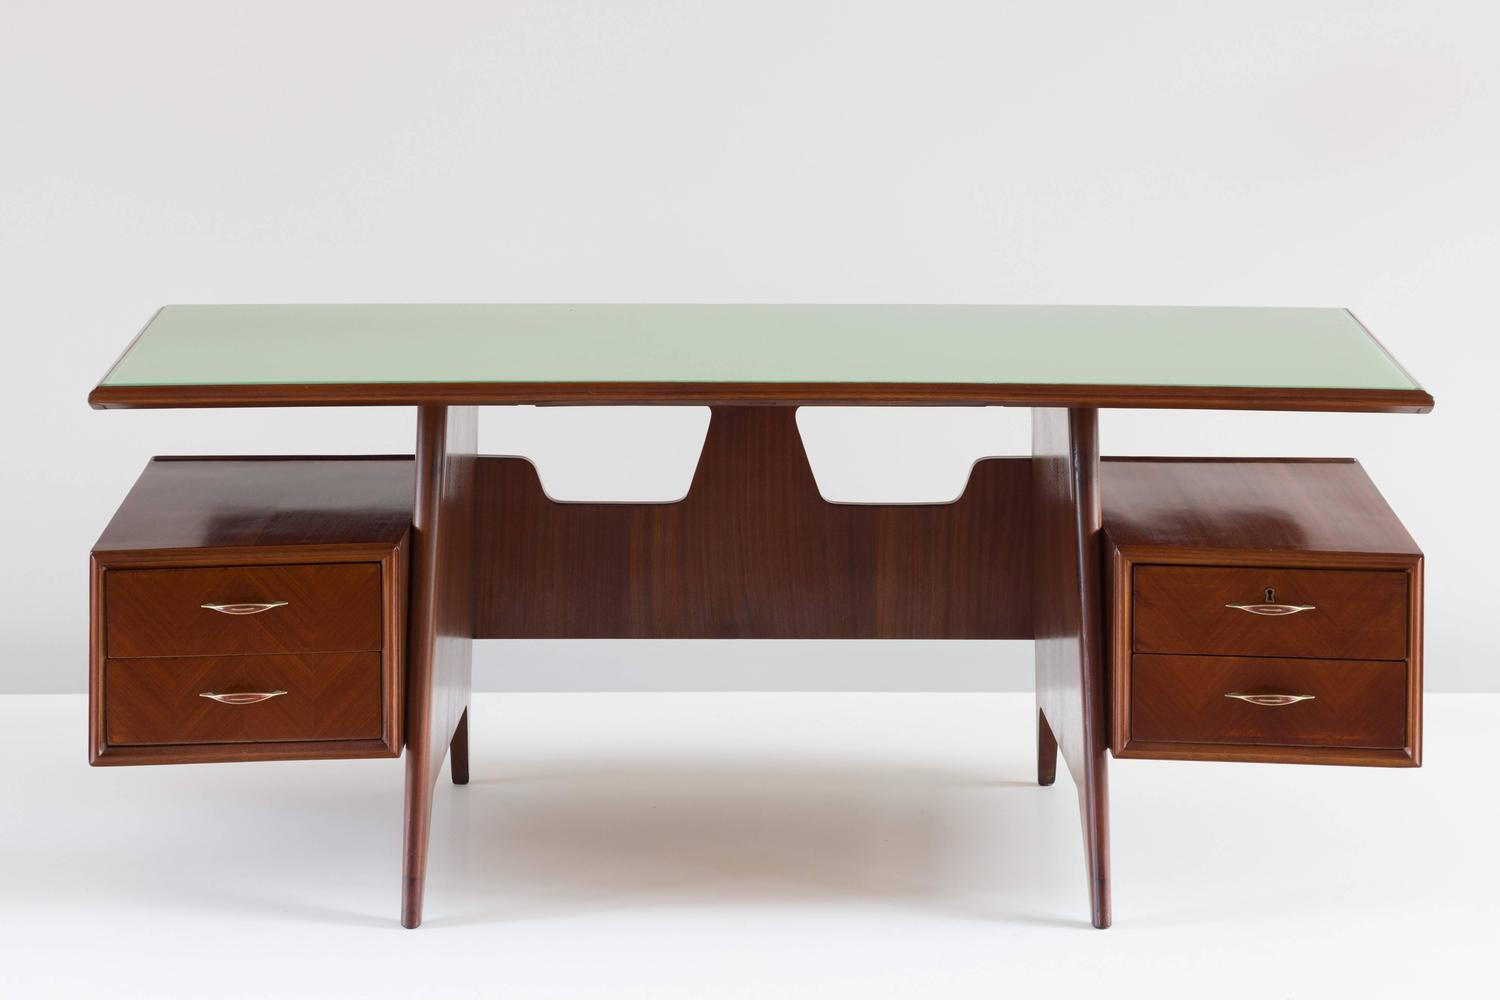 executive writing desk ★trig executive writing desk by trendway™ check price for trig executive writing desk by trendway get it to day on-line looking has currently gone an extended.